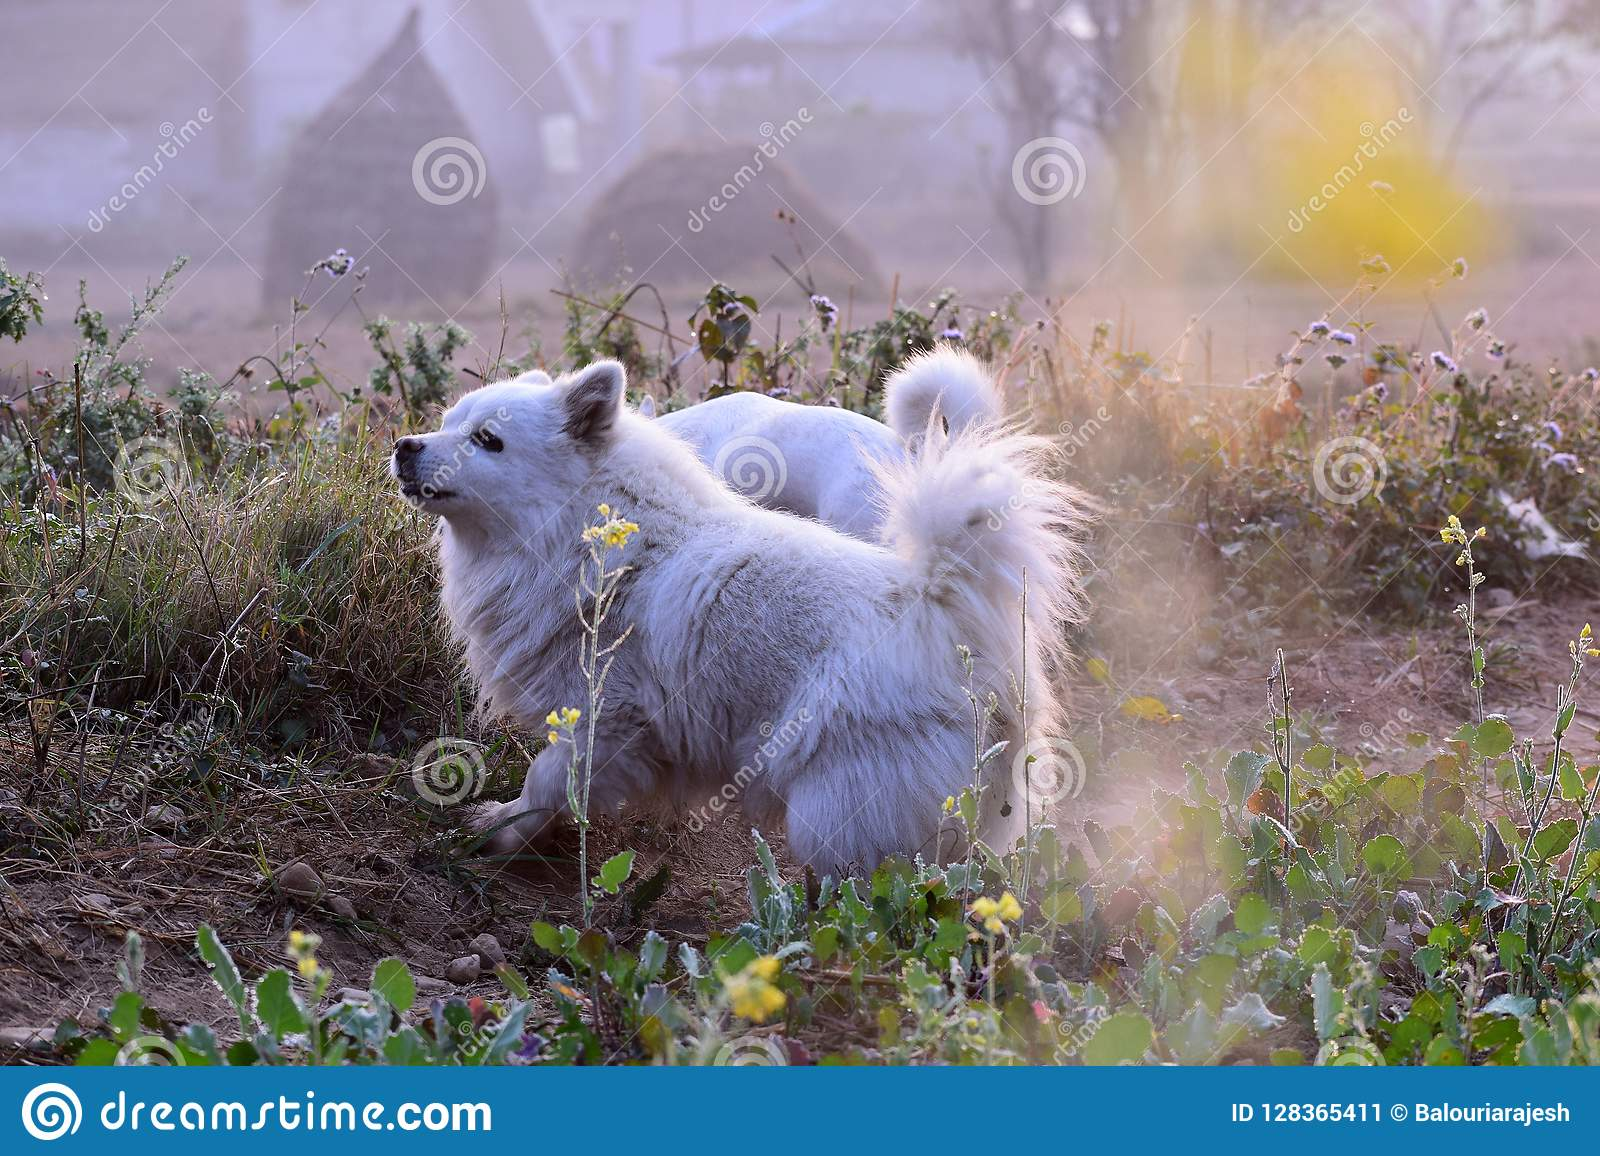 My Little Dog A Heartbeat At My Feet Stock Image Image Of Love